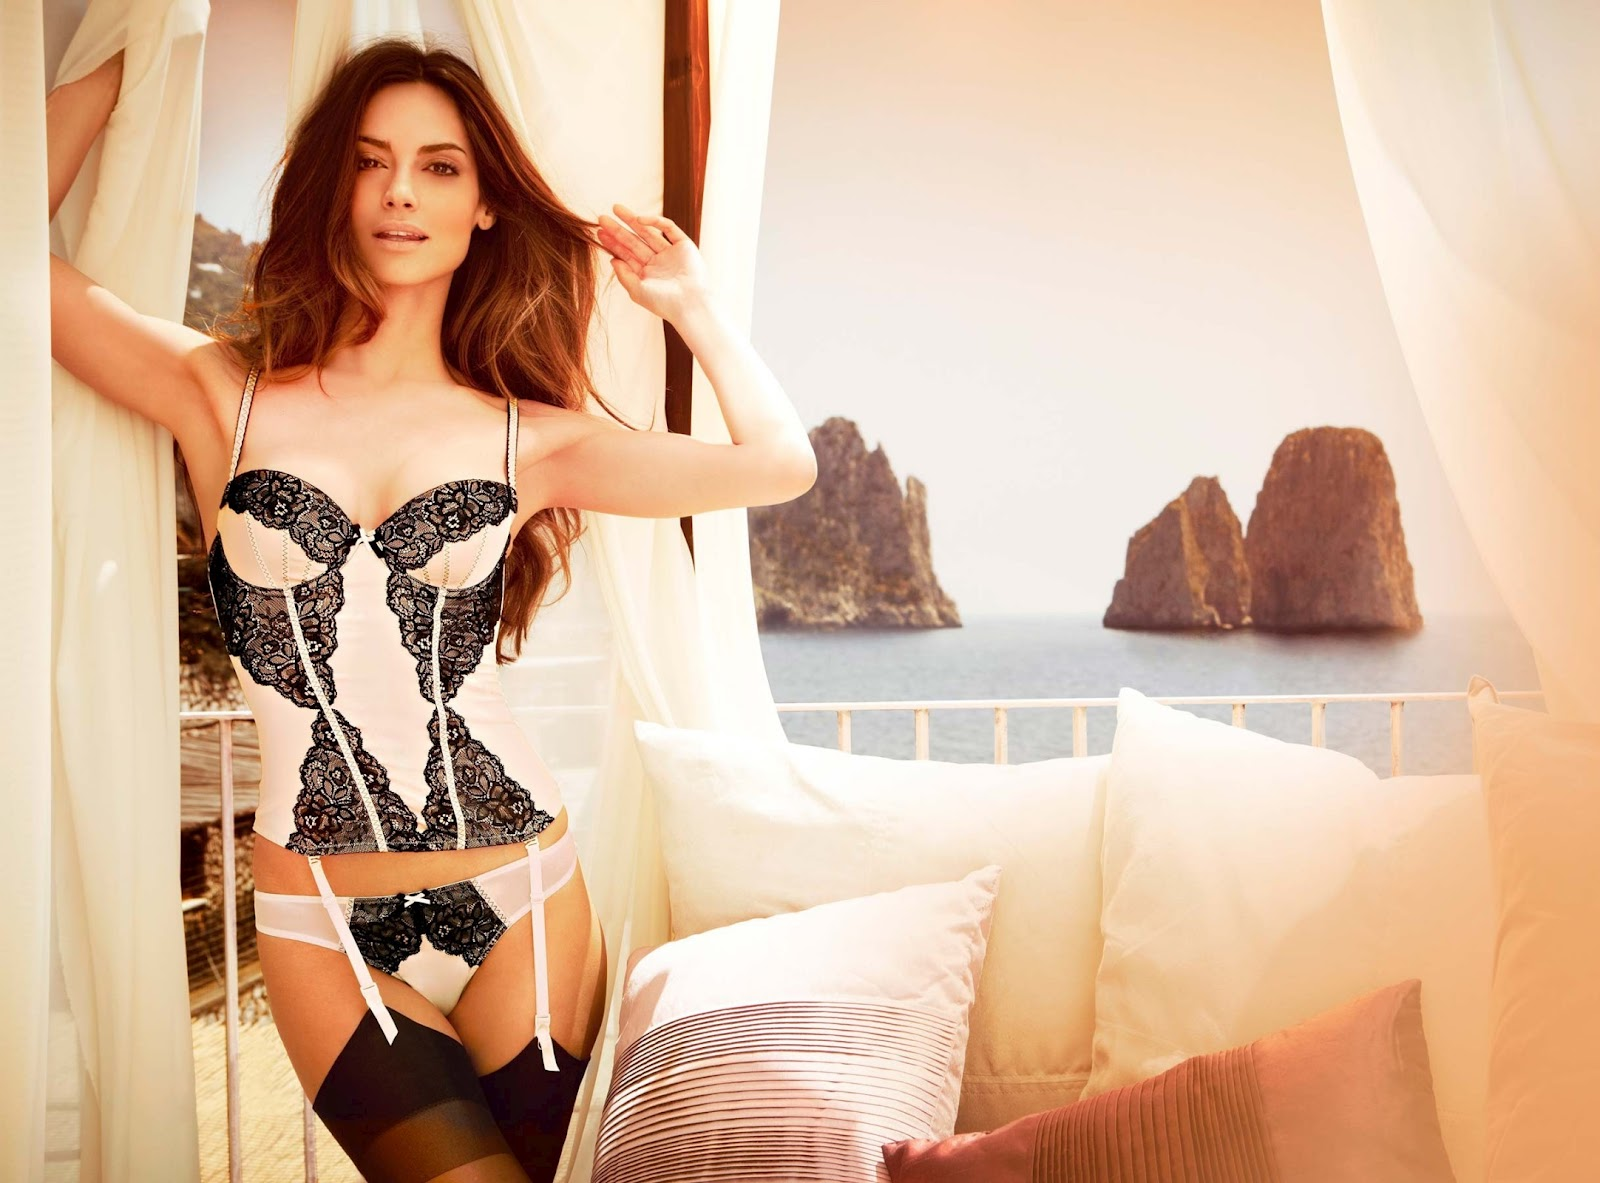 Yamamay Lingerie Fall 2012 featuring Ariadne Artiles